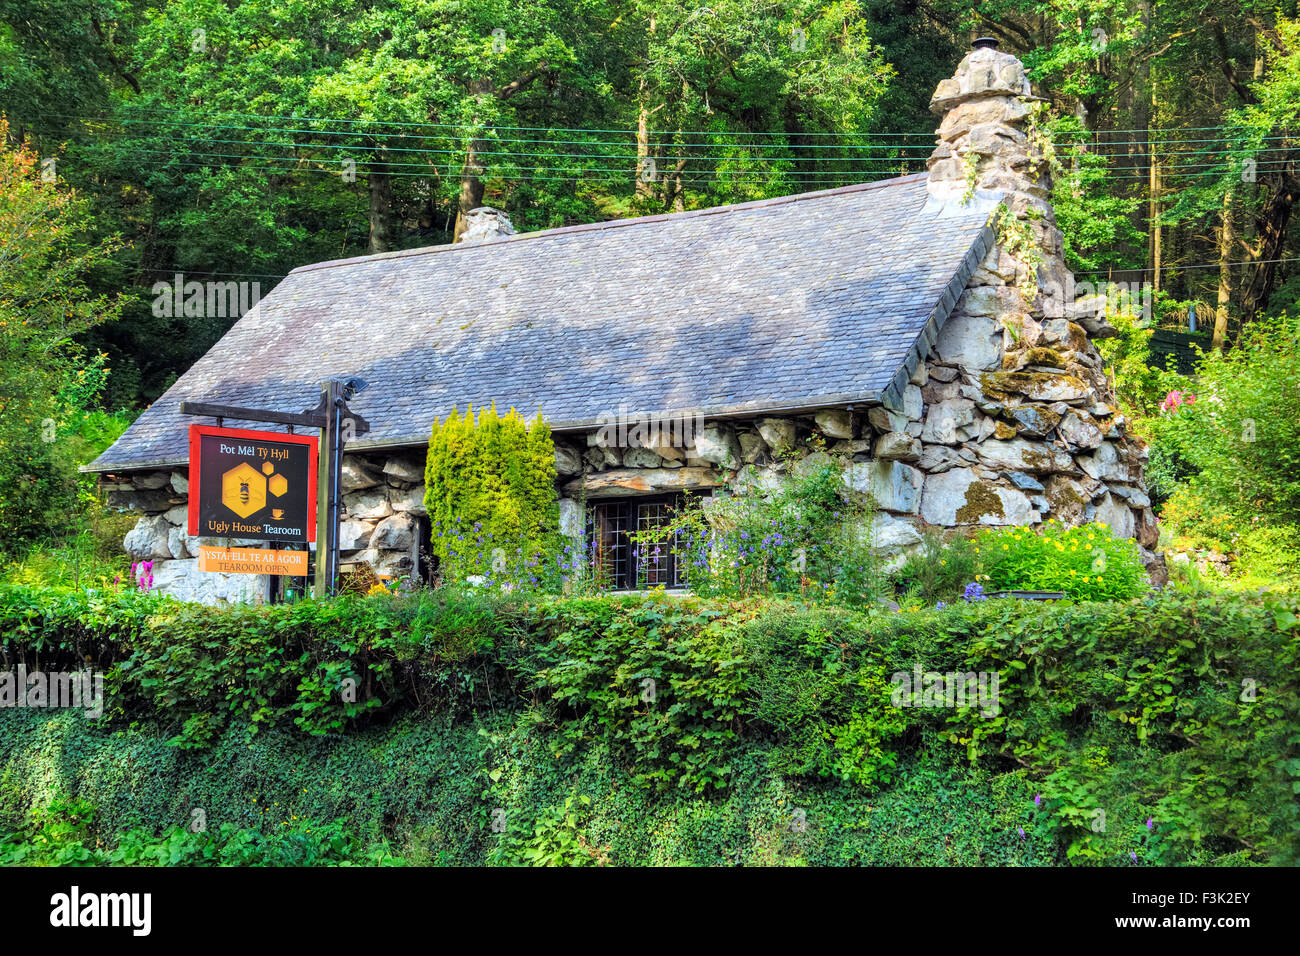 Ty Hyll, The Ugly House, Betws-y-coed, Wales, United Kingdom - Stock Image